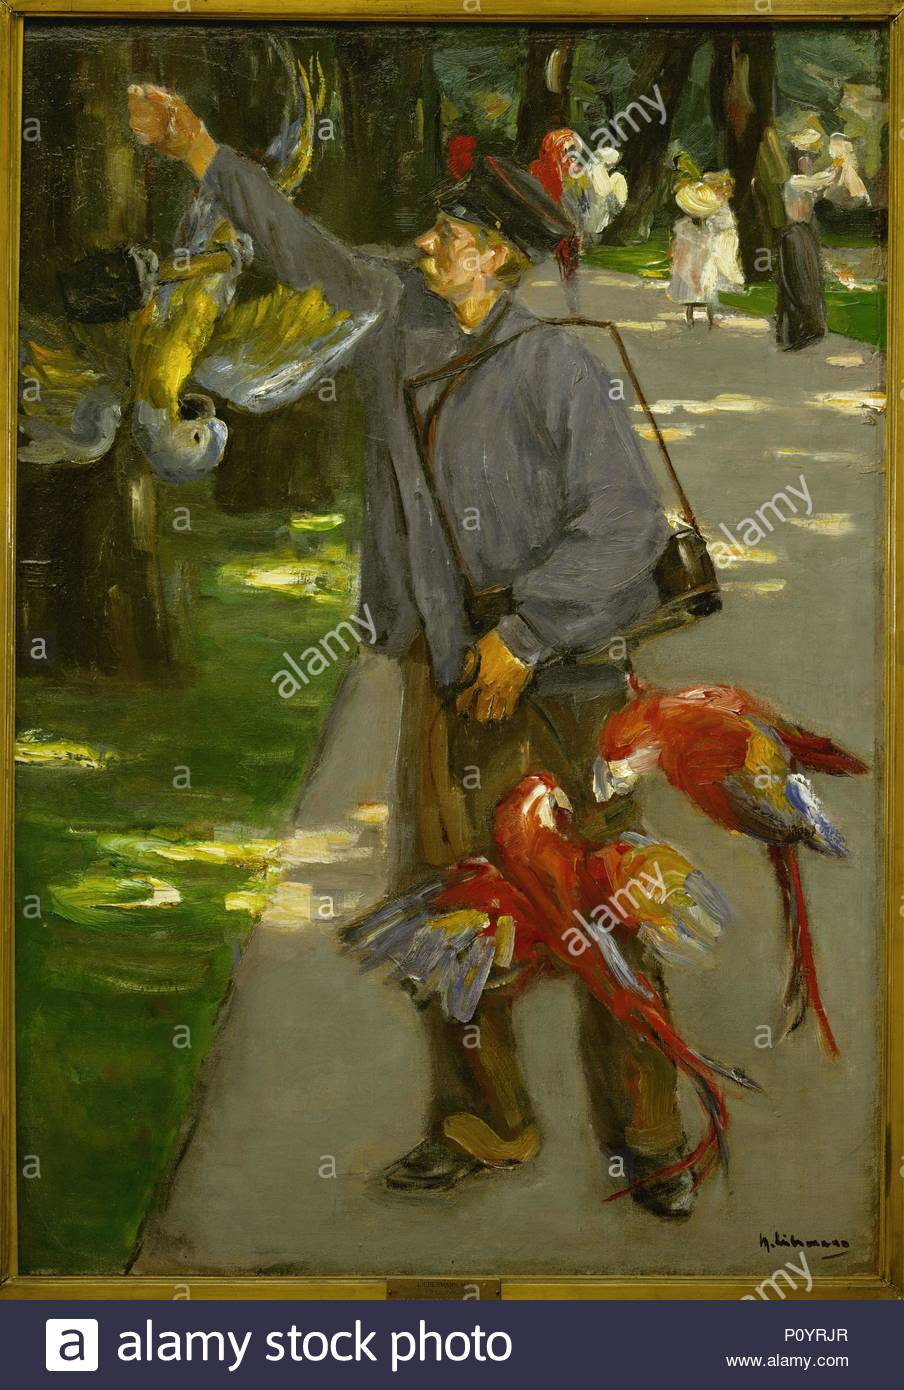 The parrot-man Oil on canvas (1902) 109.5 x 72 cm. Author: Max Liebermann (1847-1935). Location: Folkwang-Museum, Essen, Germany. - Stock Image